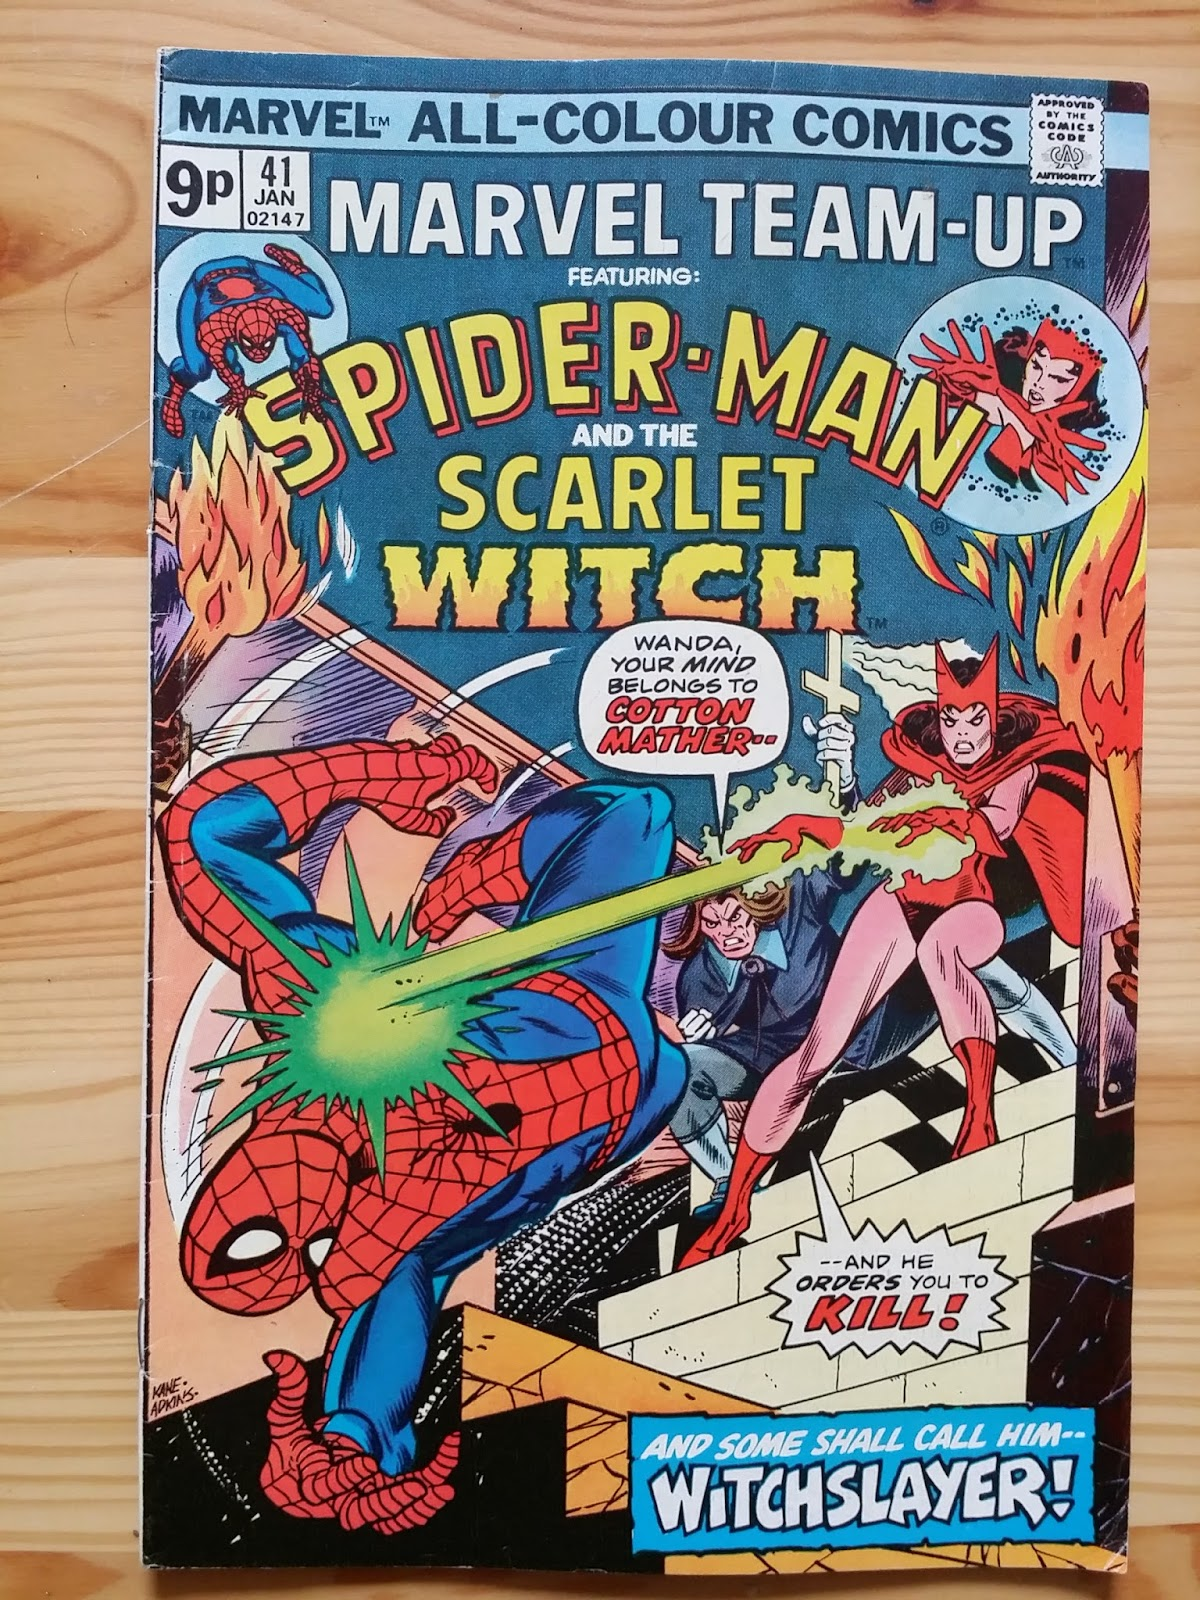 Marvel Team-Up  Spider Man and the Scarlet Witch